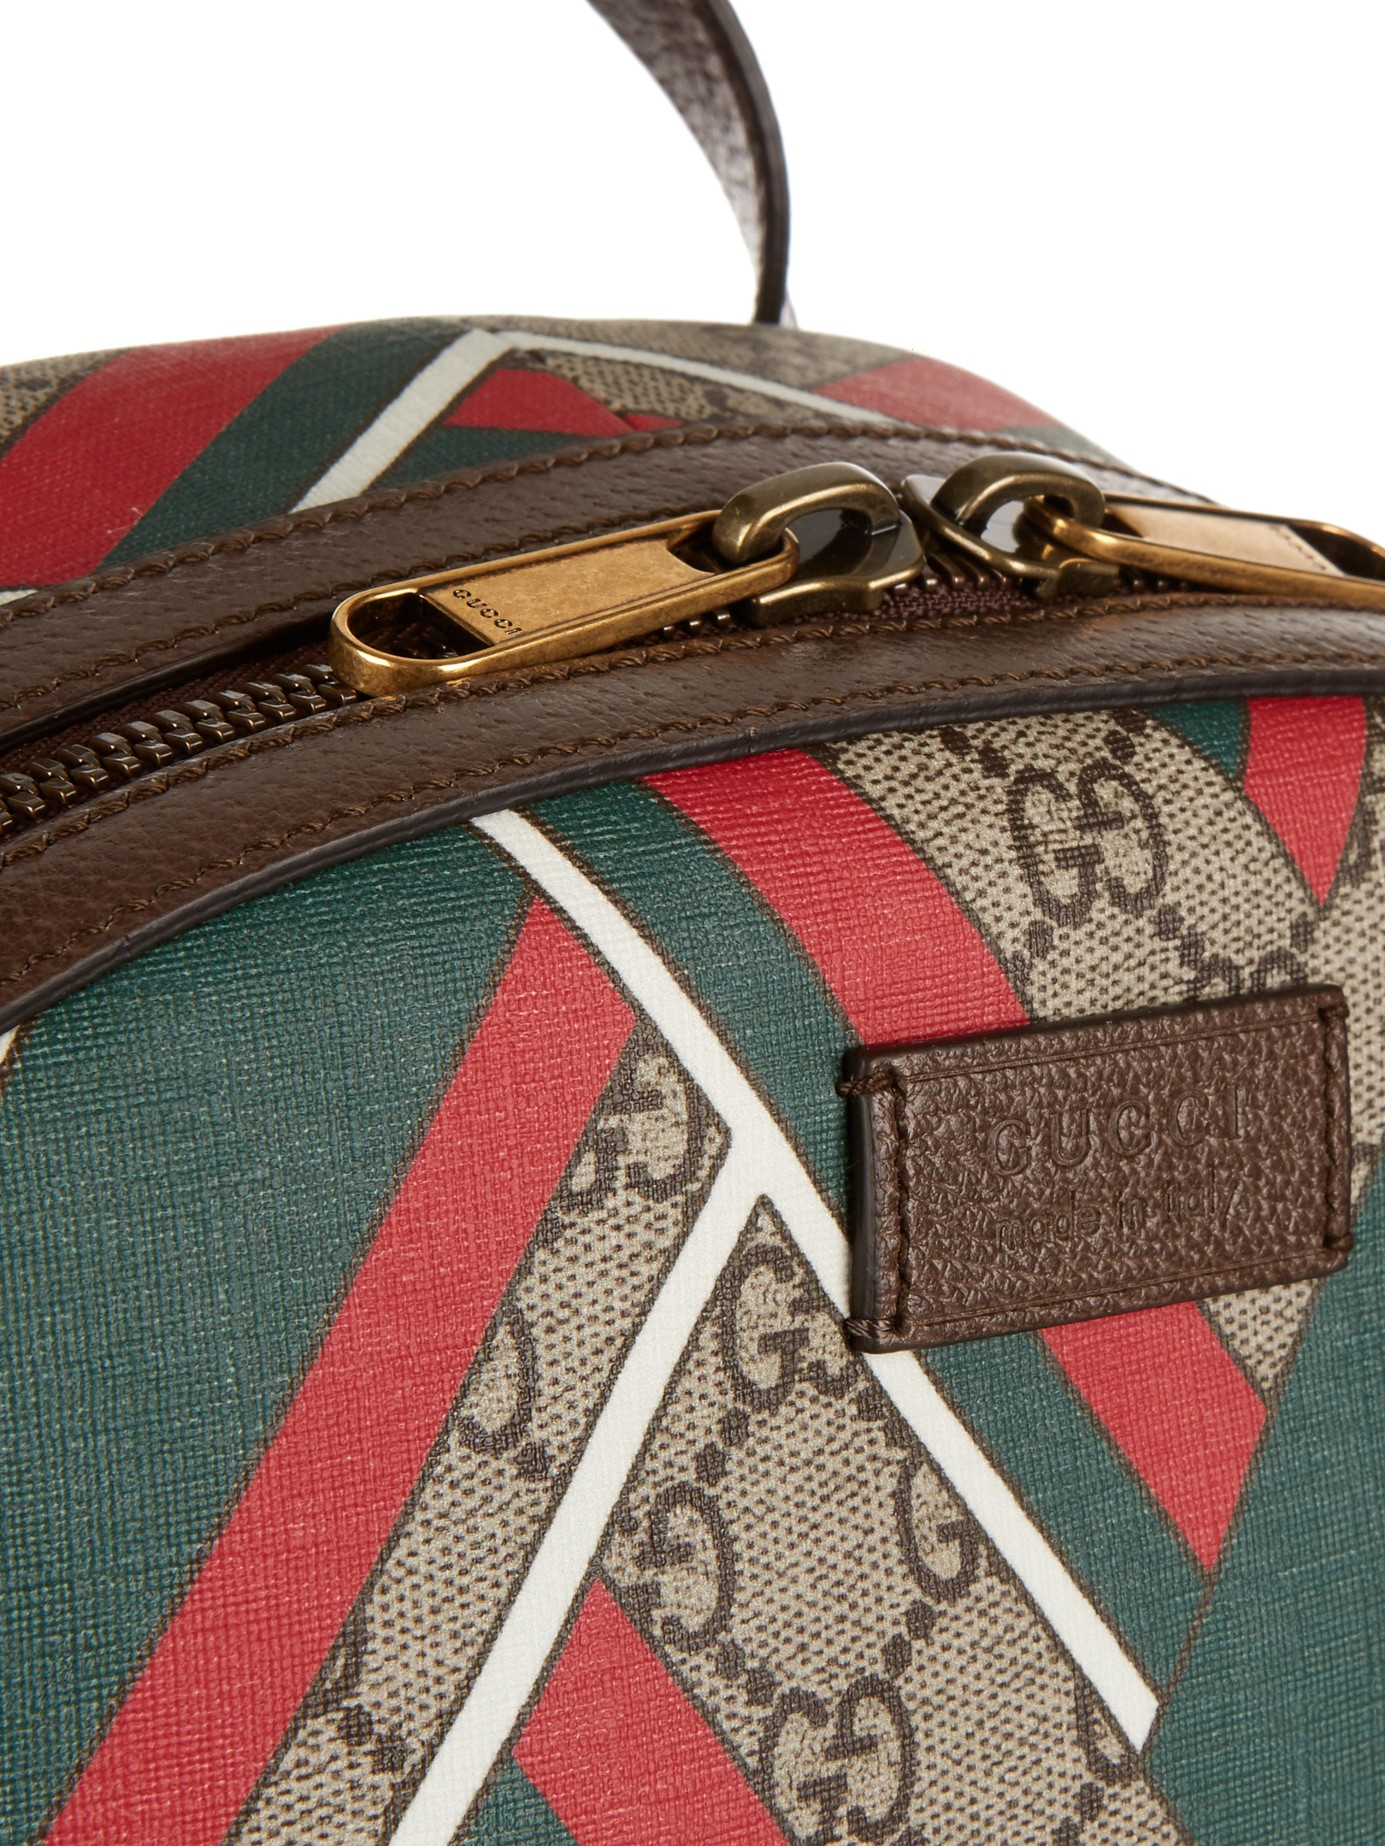 0b188c01cade Gucci GG Supreme Canvas Chevron-Print Backpack in Brown for Men - Lyst